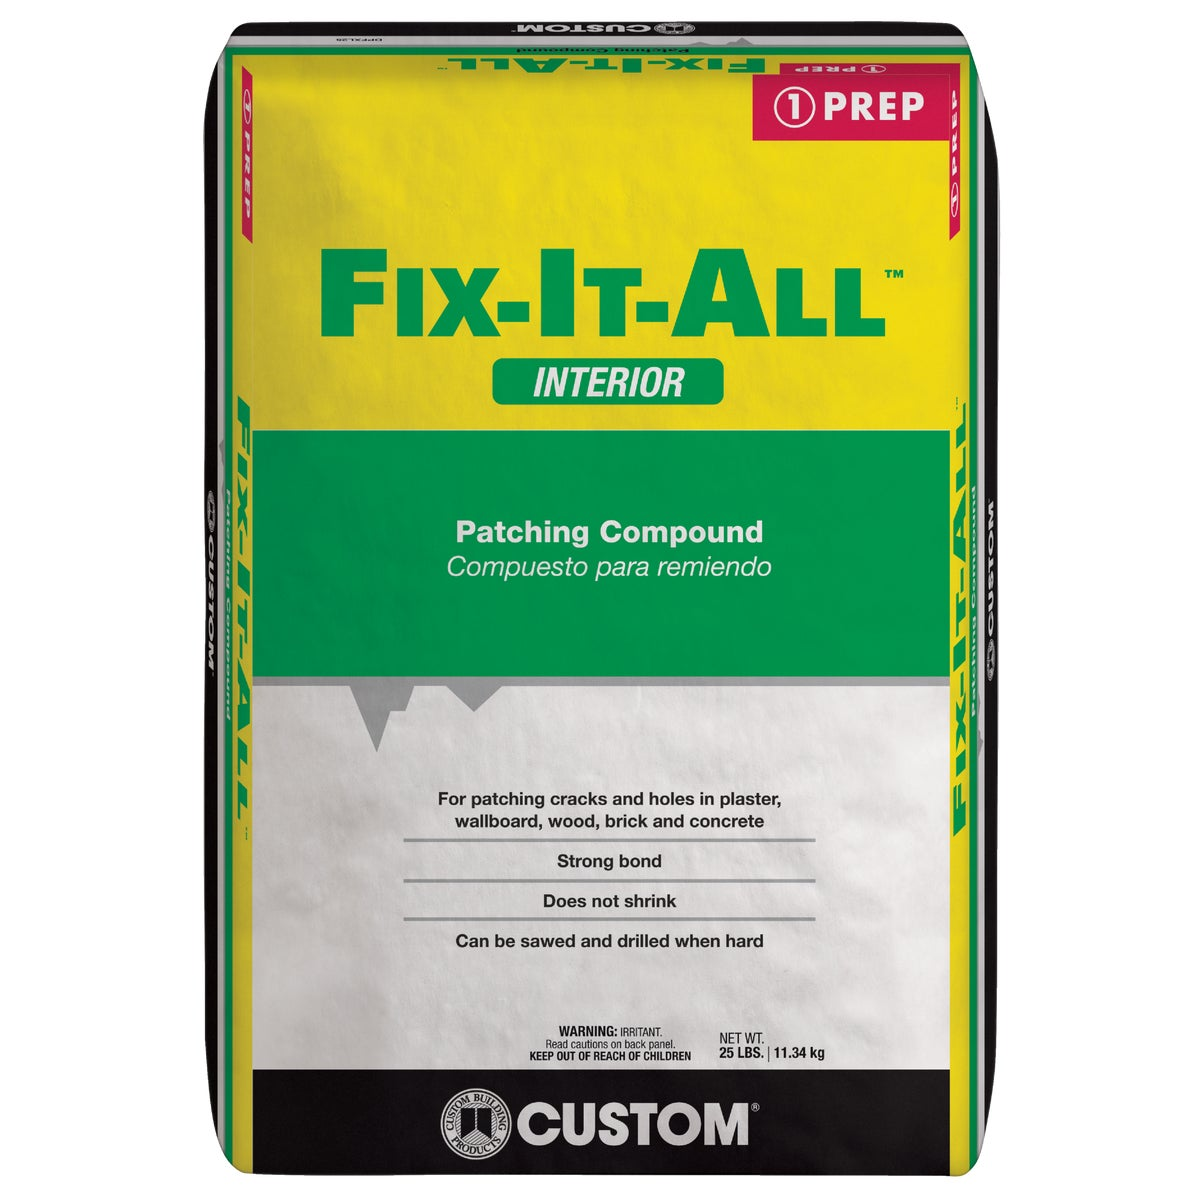 25LB BAG FIXALL PATCH - DPFXL25 by Custom Buildng Prods